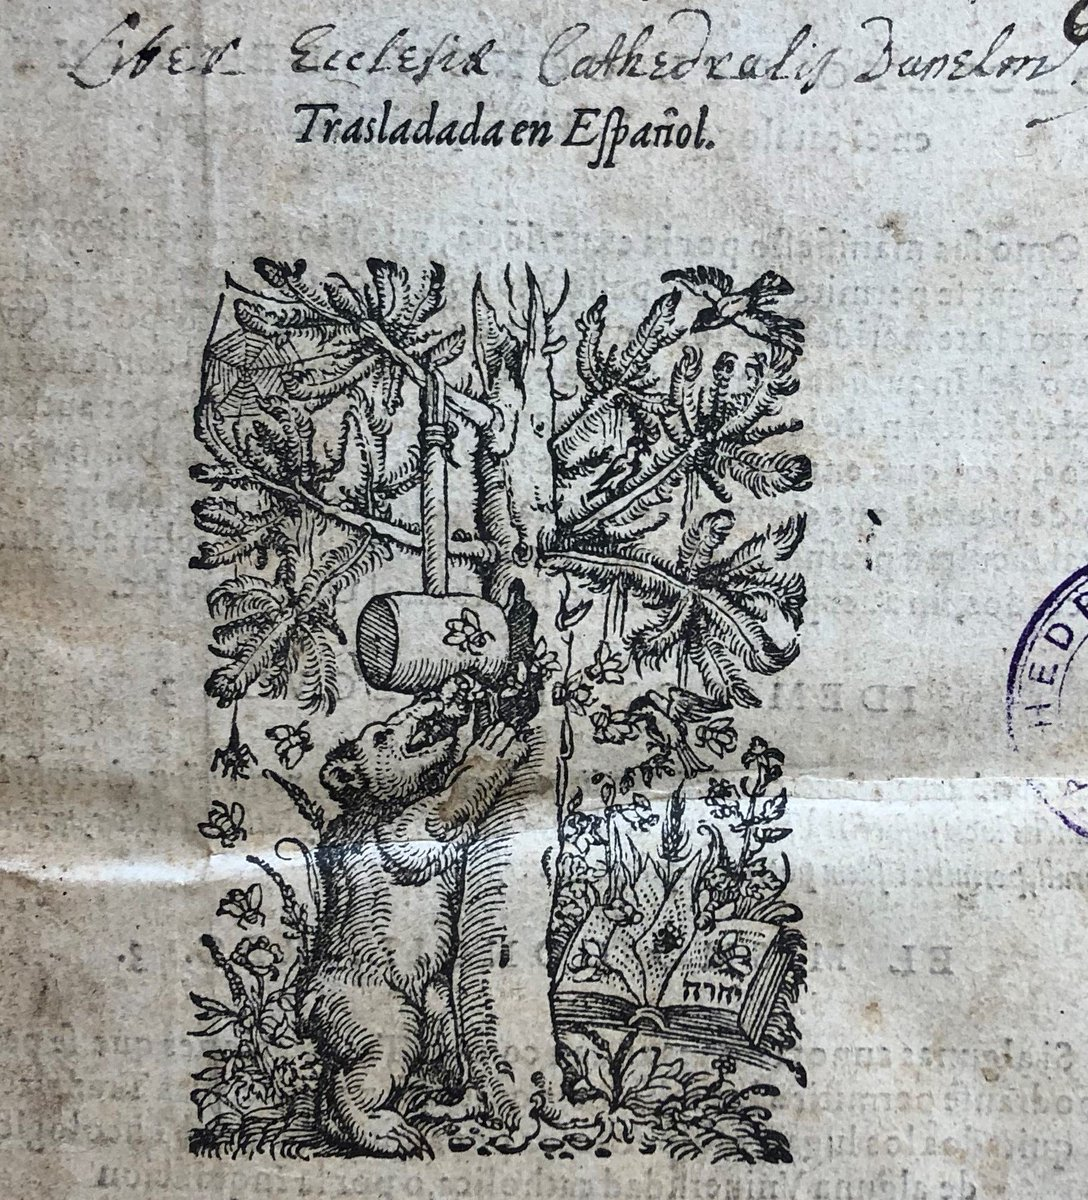 For #WorldBeeDay heres the printers device of the Apiarius family of Bern in a 1569 Spanish Bible. Apiarius translates as bee master, & the bear is the symbol of Bern. Read more about the Bear Bible here: durhamcathedral.co.uk/heritage/treas… #Reformation #earlymodern #rarebooks